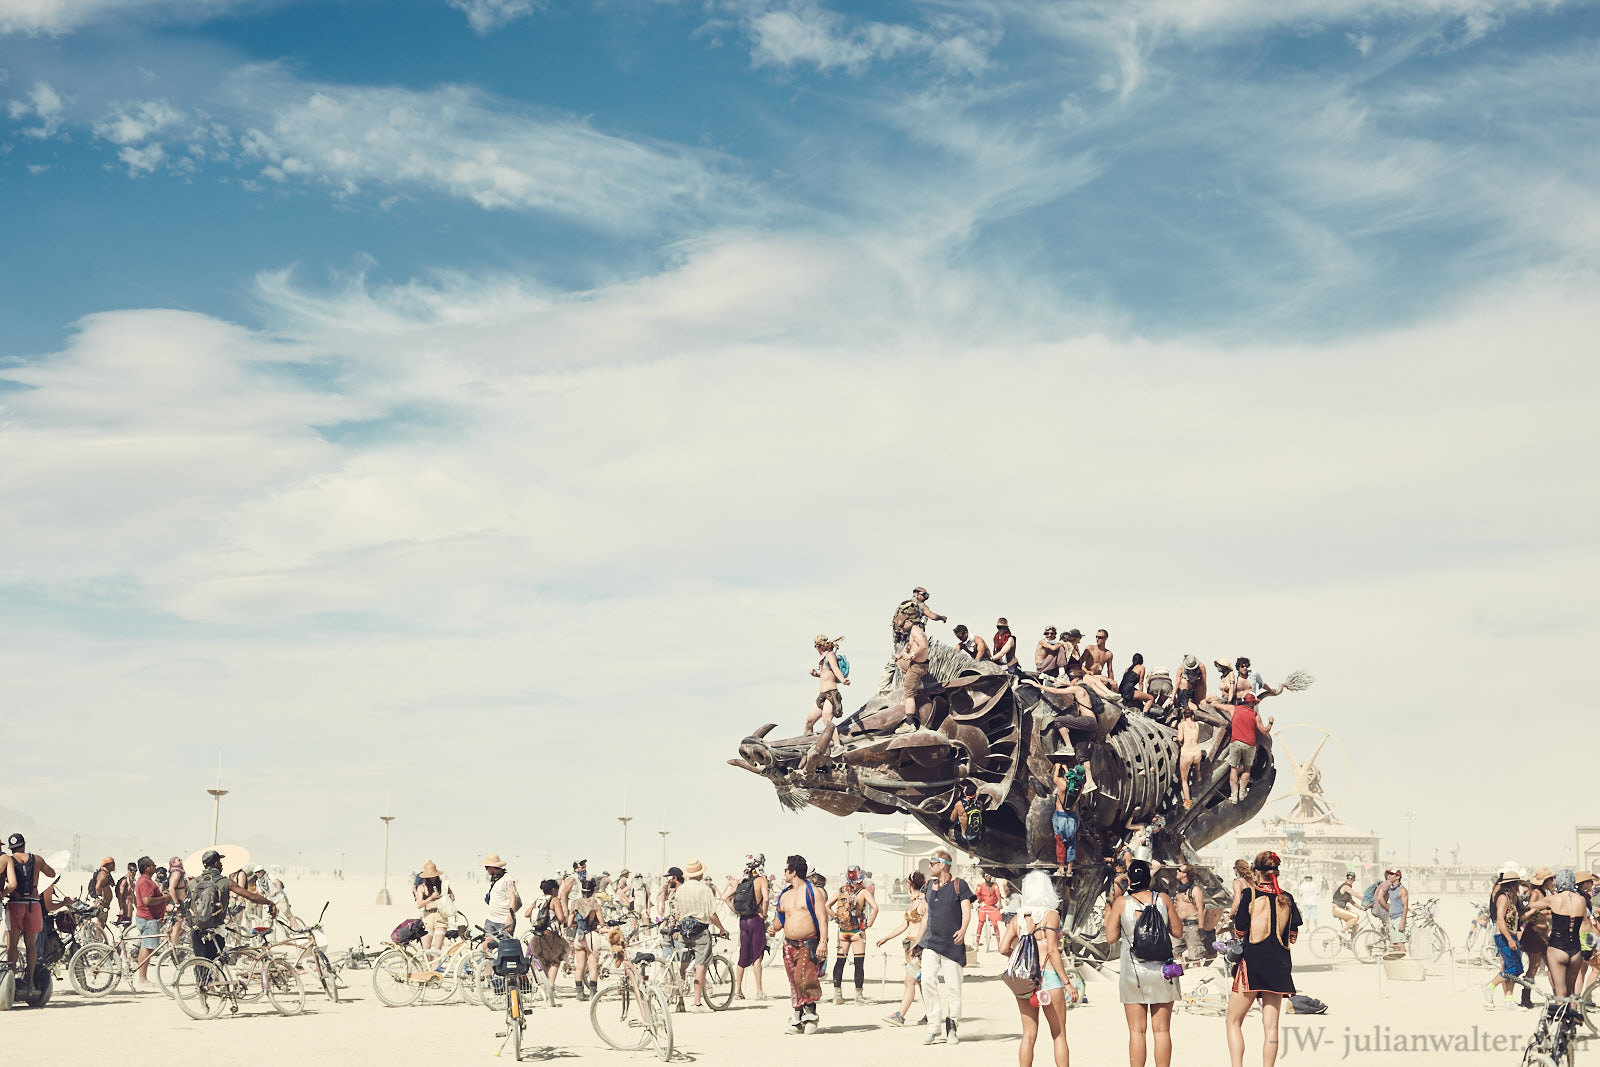 Burning Man 2016 - Julian Walter Photography